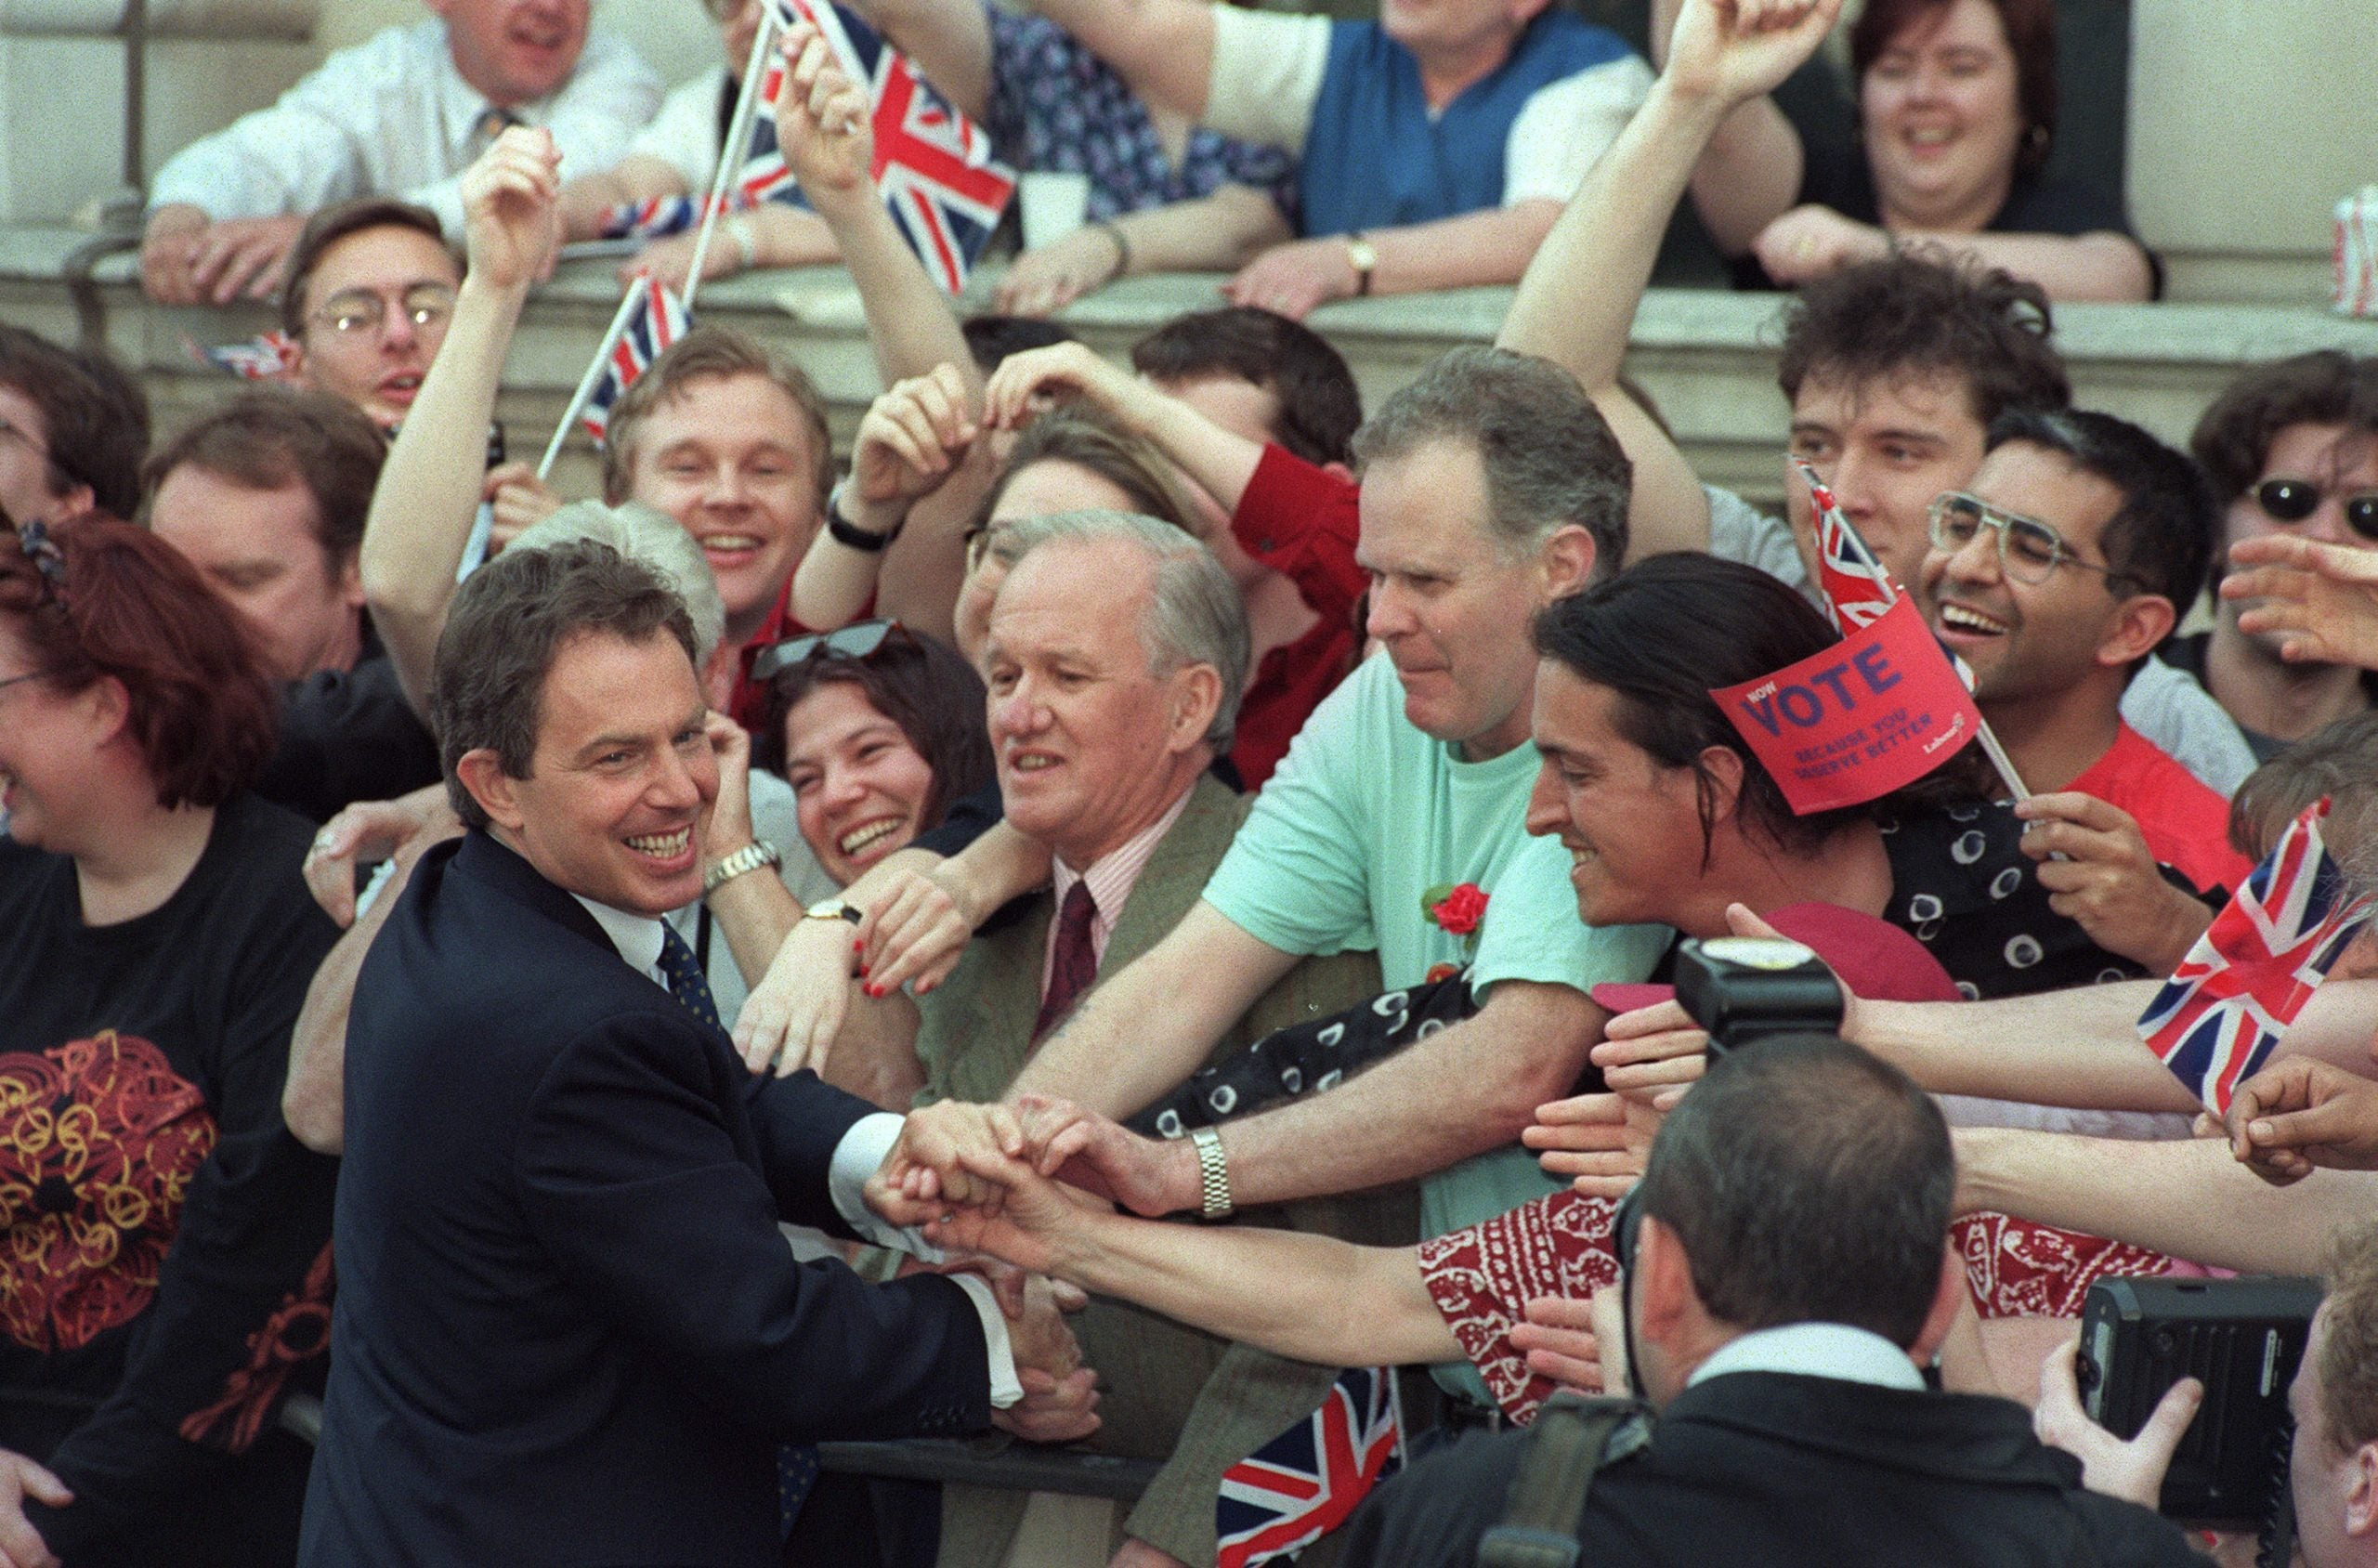 In 1997, I refused to get out of bed to see Blair. Some things just aren't worth it